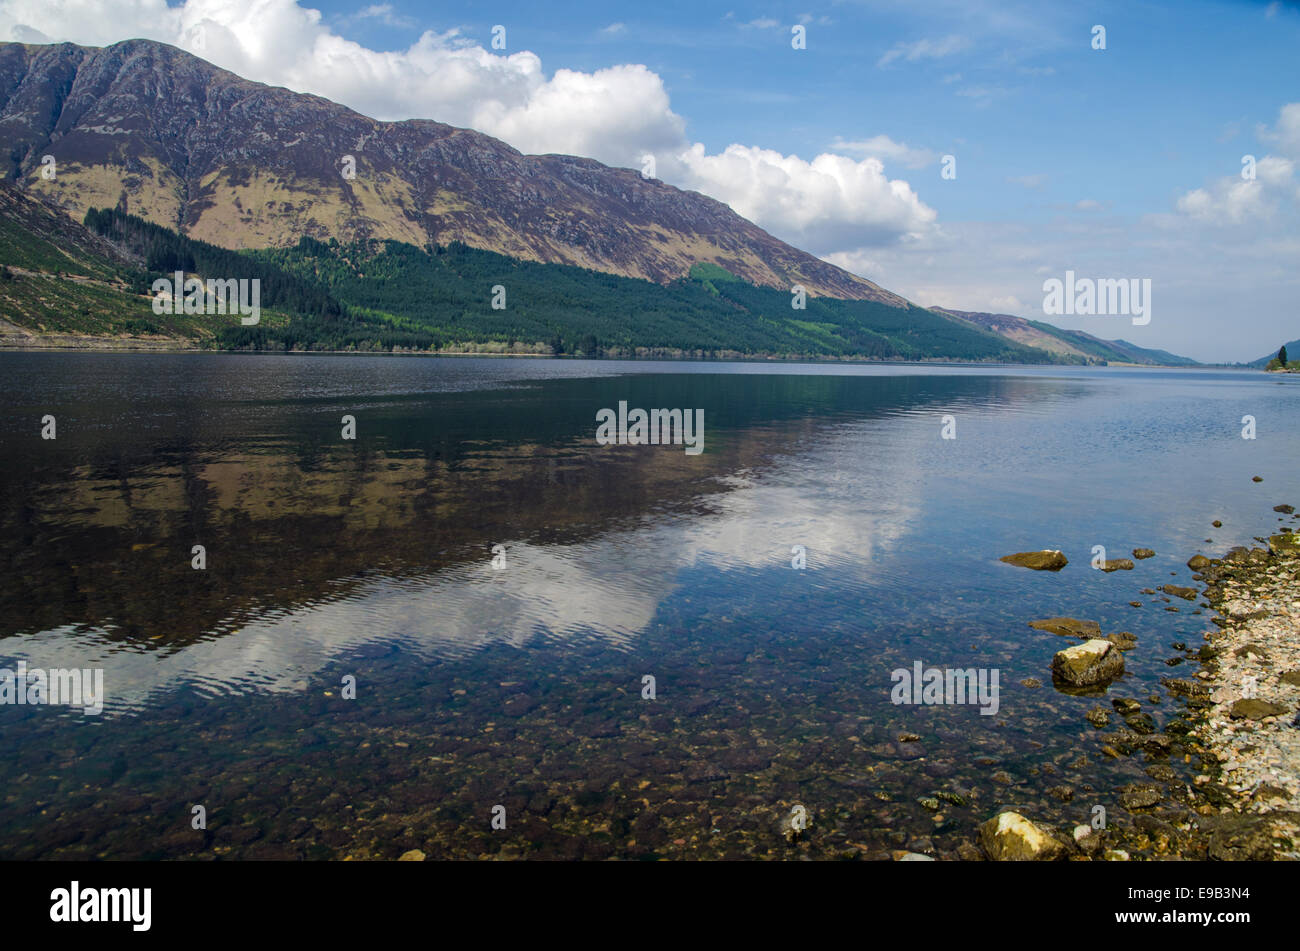 Reflections on a Scottish Loch, Loch Lochy, West Highlands - Stock Image